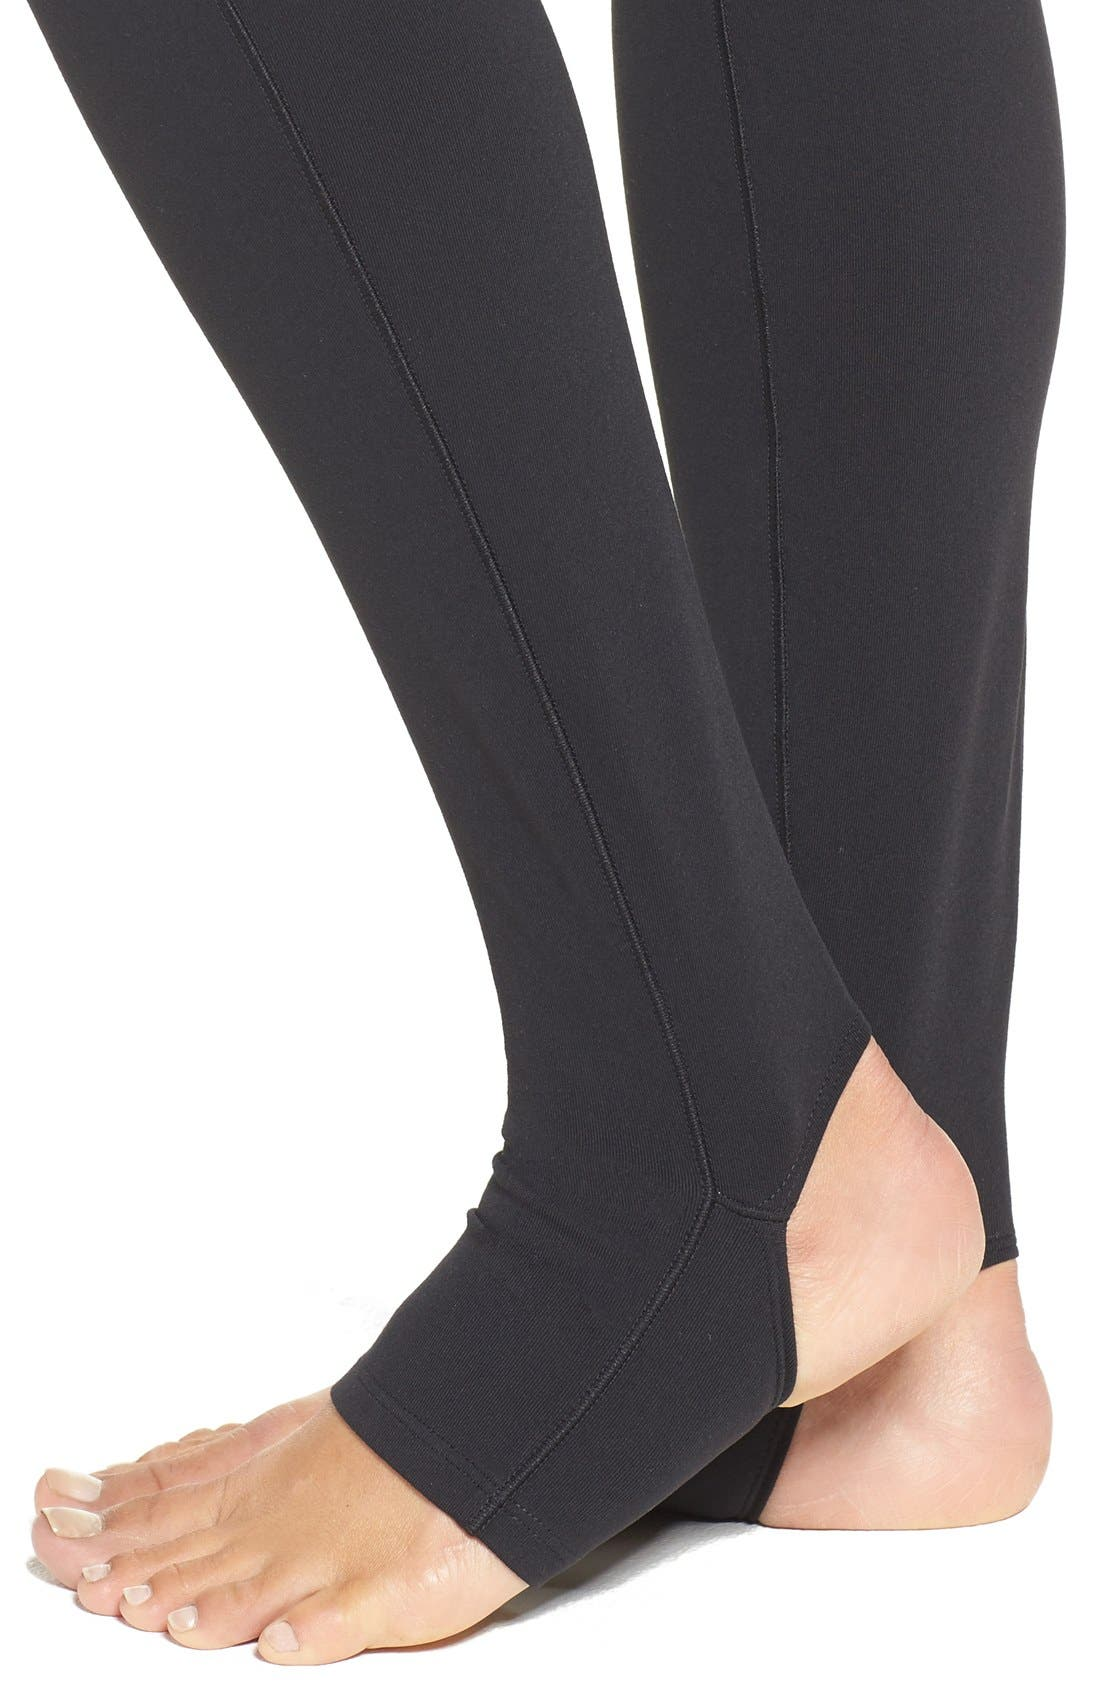 Foiled Stirrup Tights,                             Alternate thumbnail 4, color,                             001